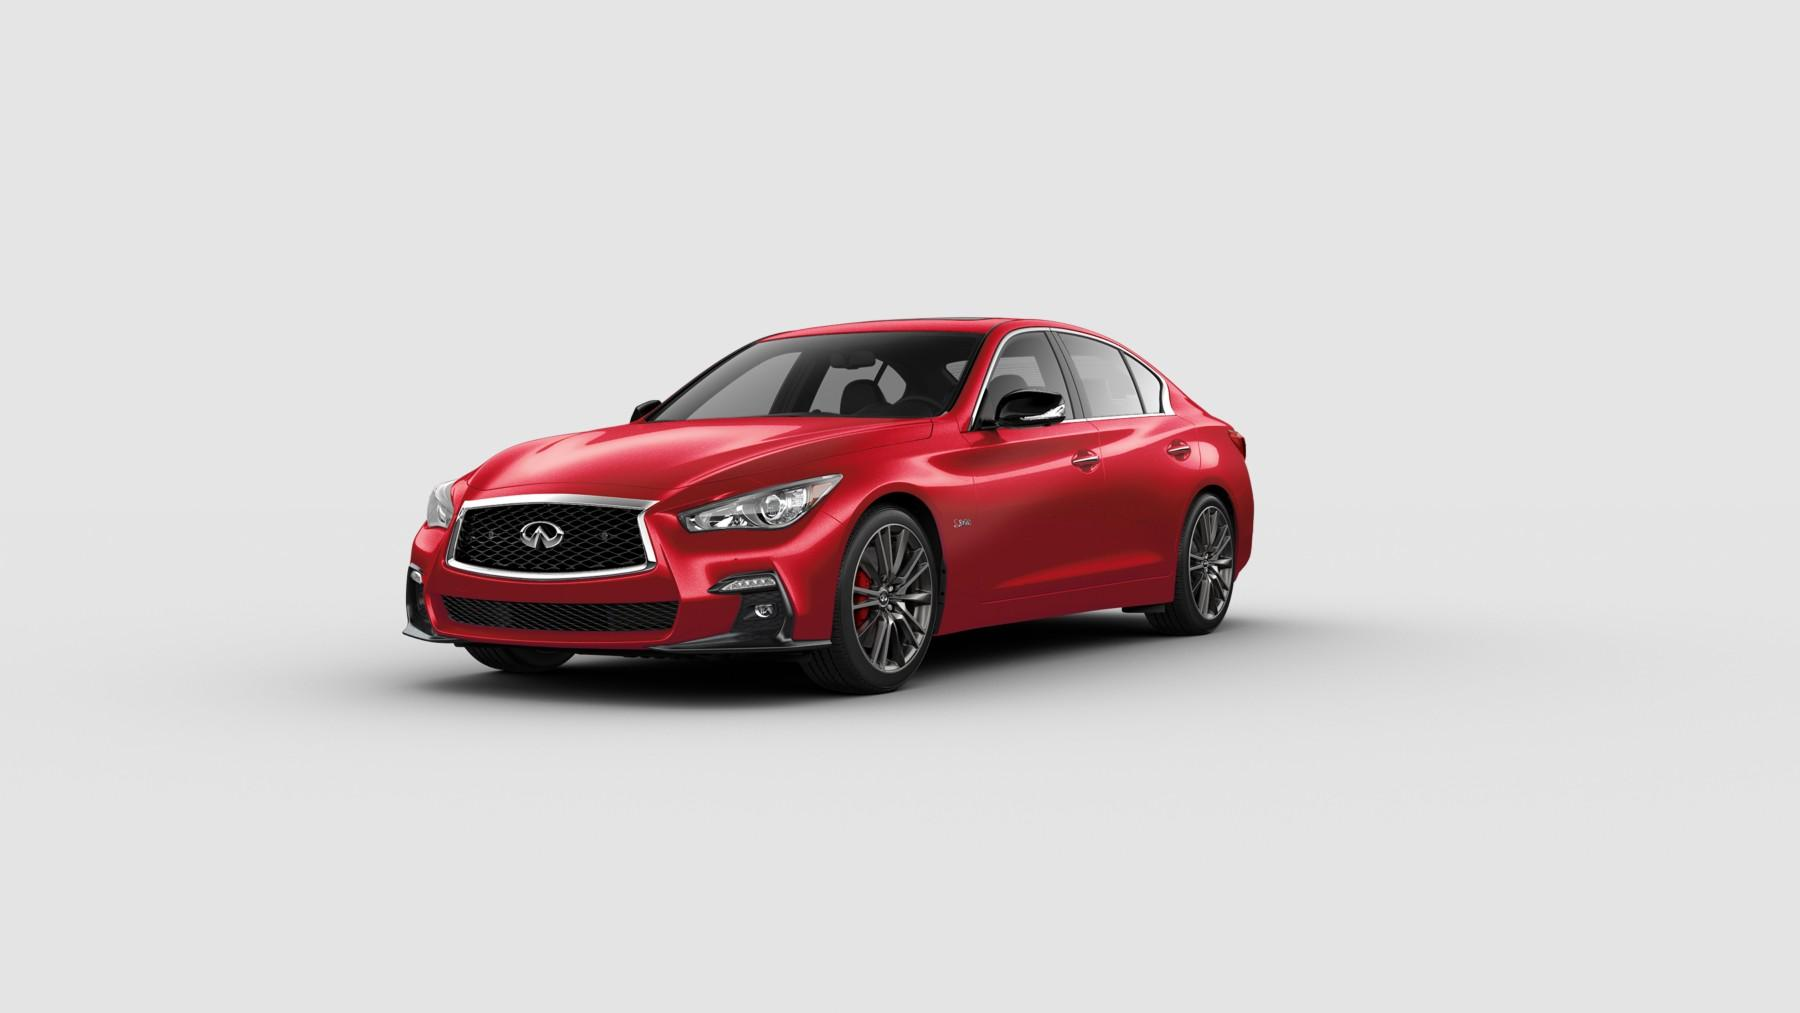 2019 INFINITI Q50 Vehicle Photo in Grapevine, TX 76051